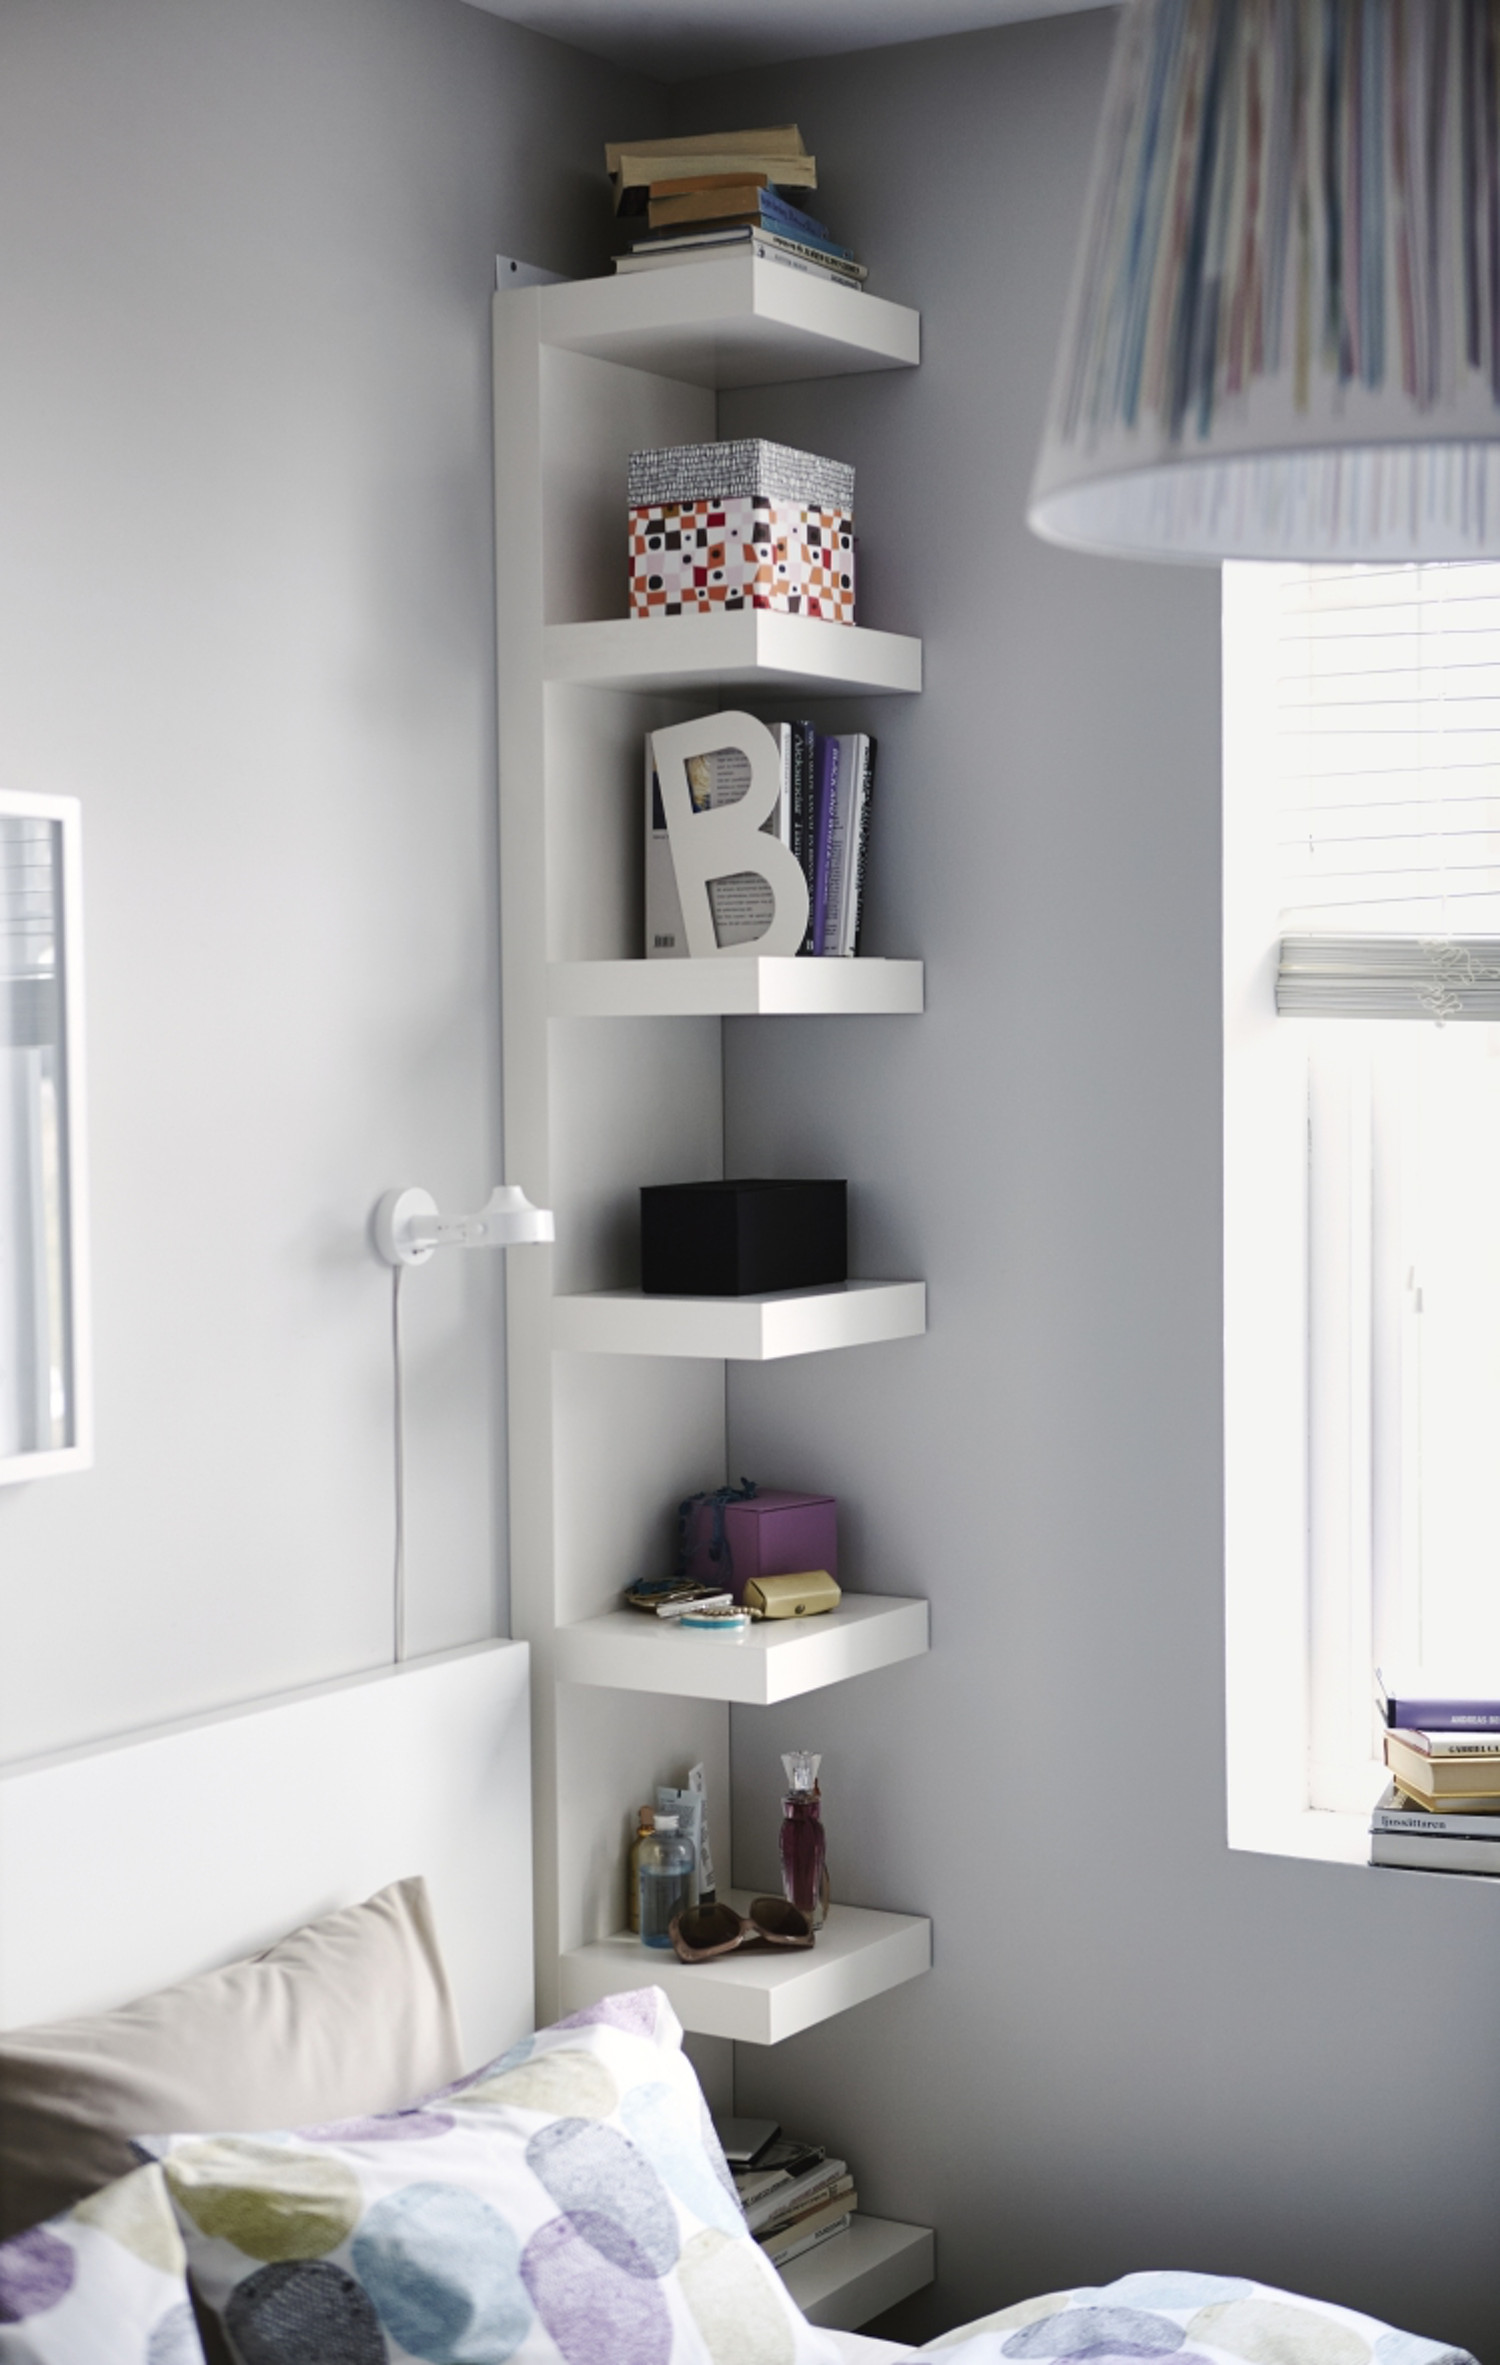 Wall Shelf for Bedroom Lovely E Shelf 5 Ways the Endlessly Versatile Lack Wall Shelf